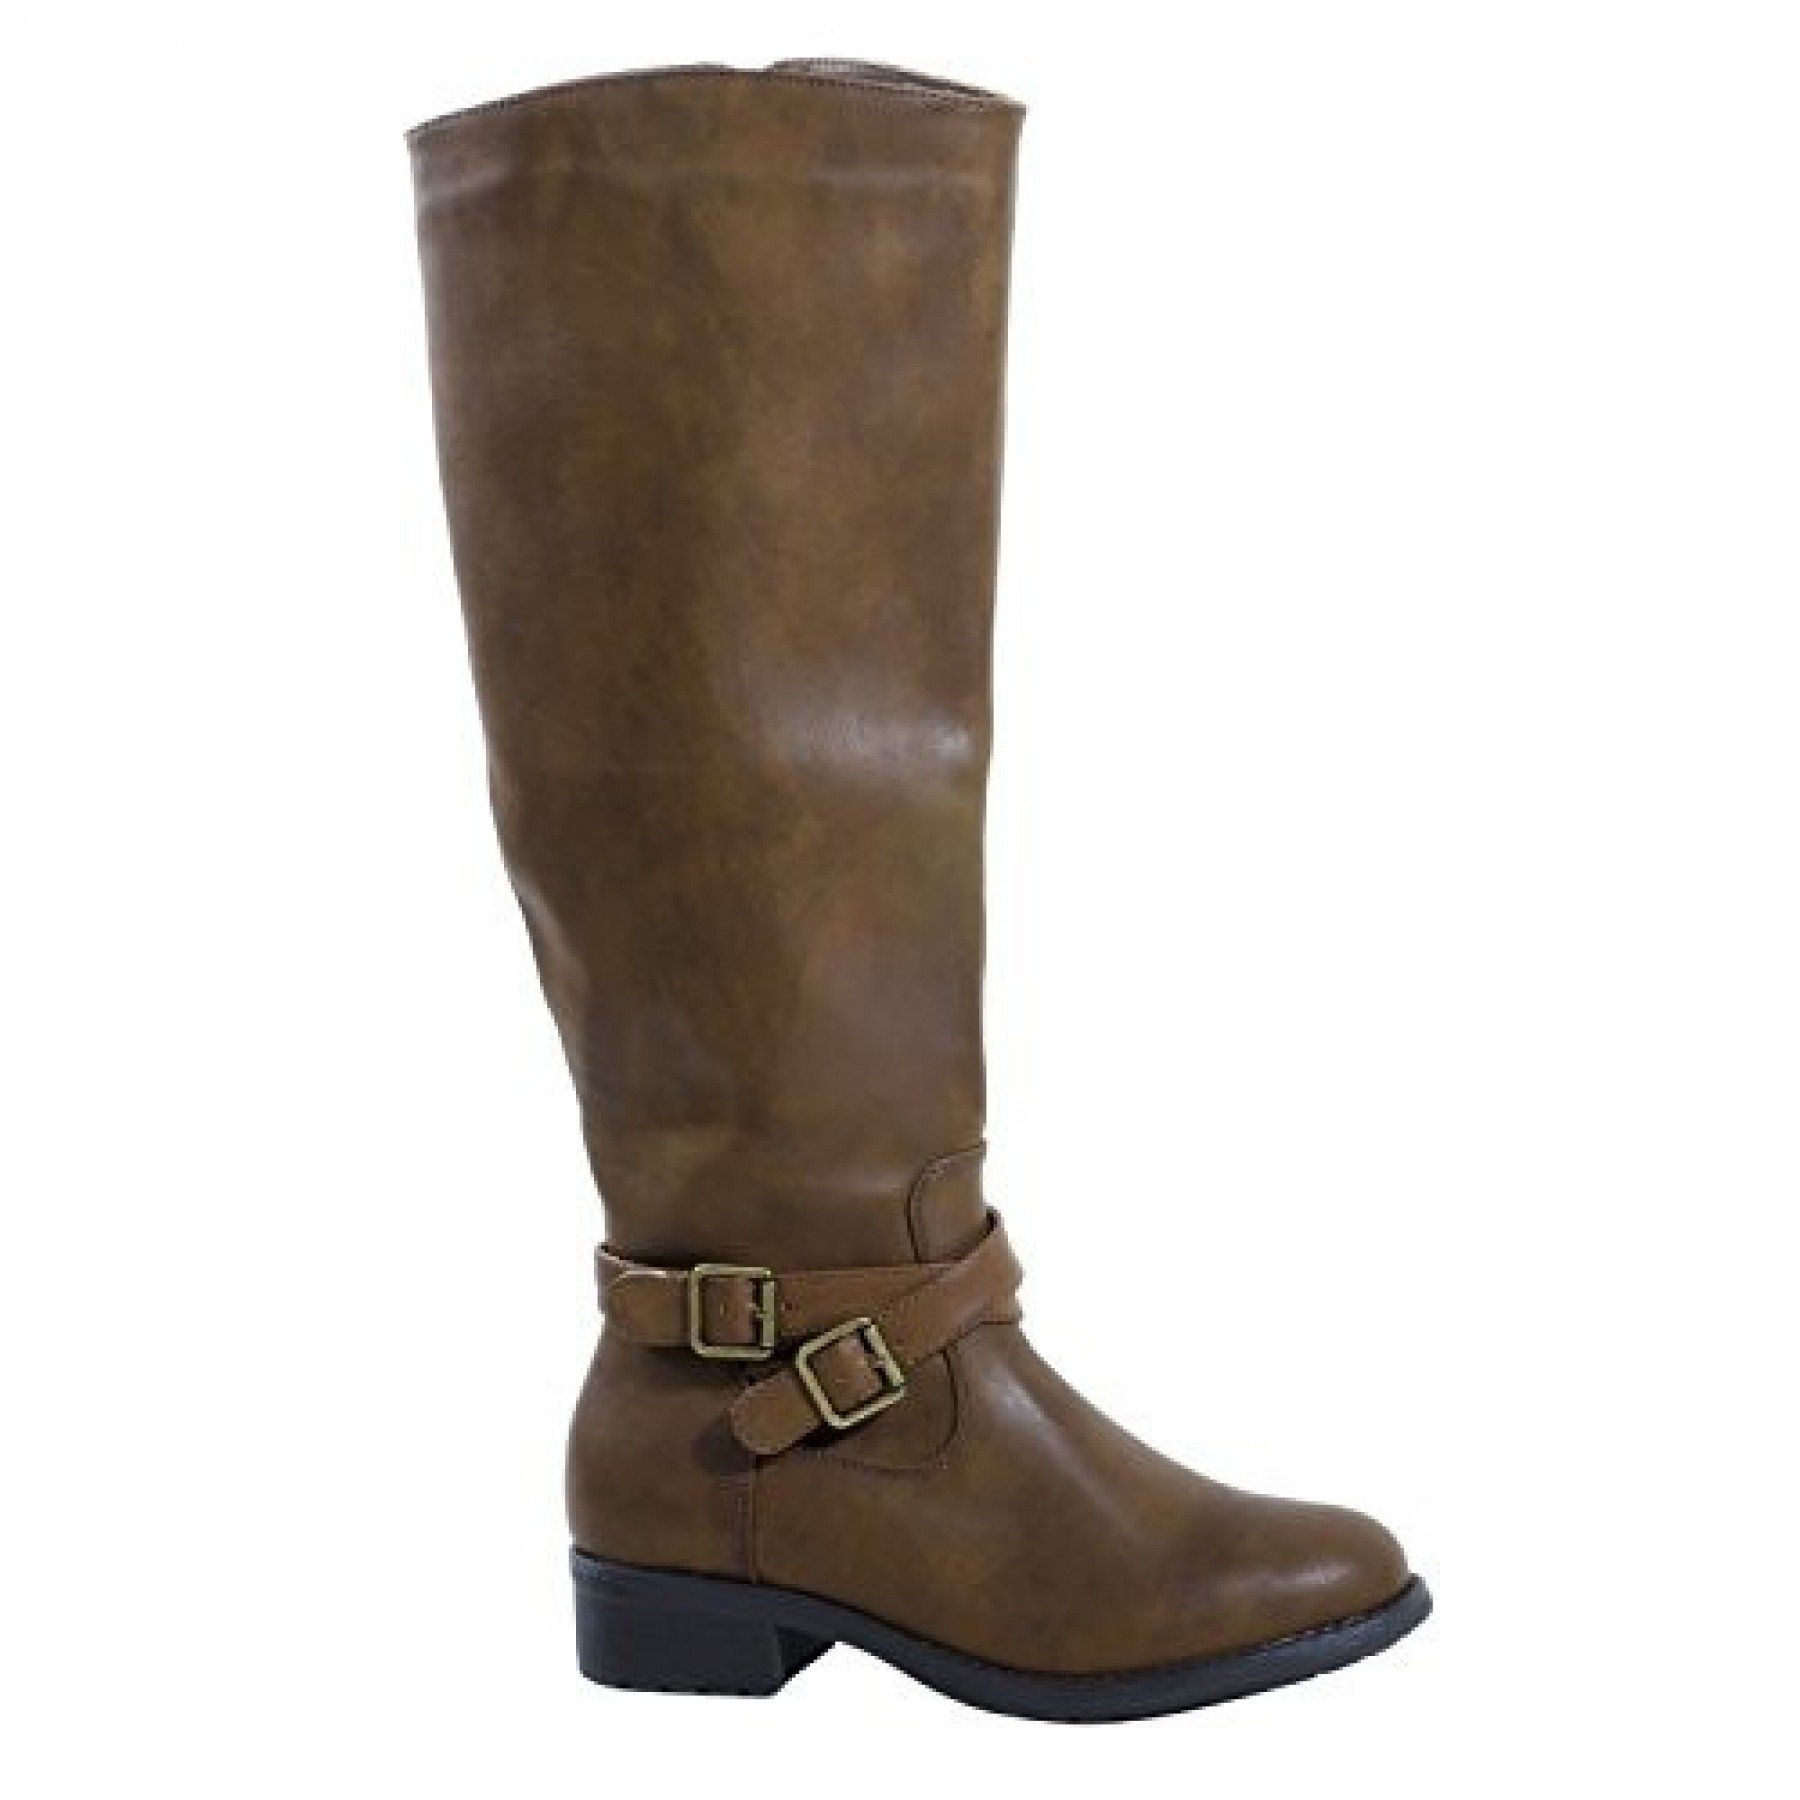 Women's Brown Manmade Rassppy Riding Boot with Low Slung Ankle Buckles